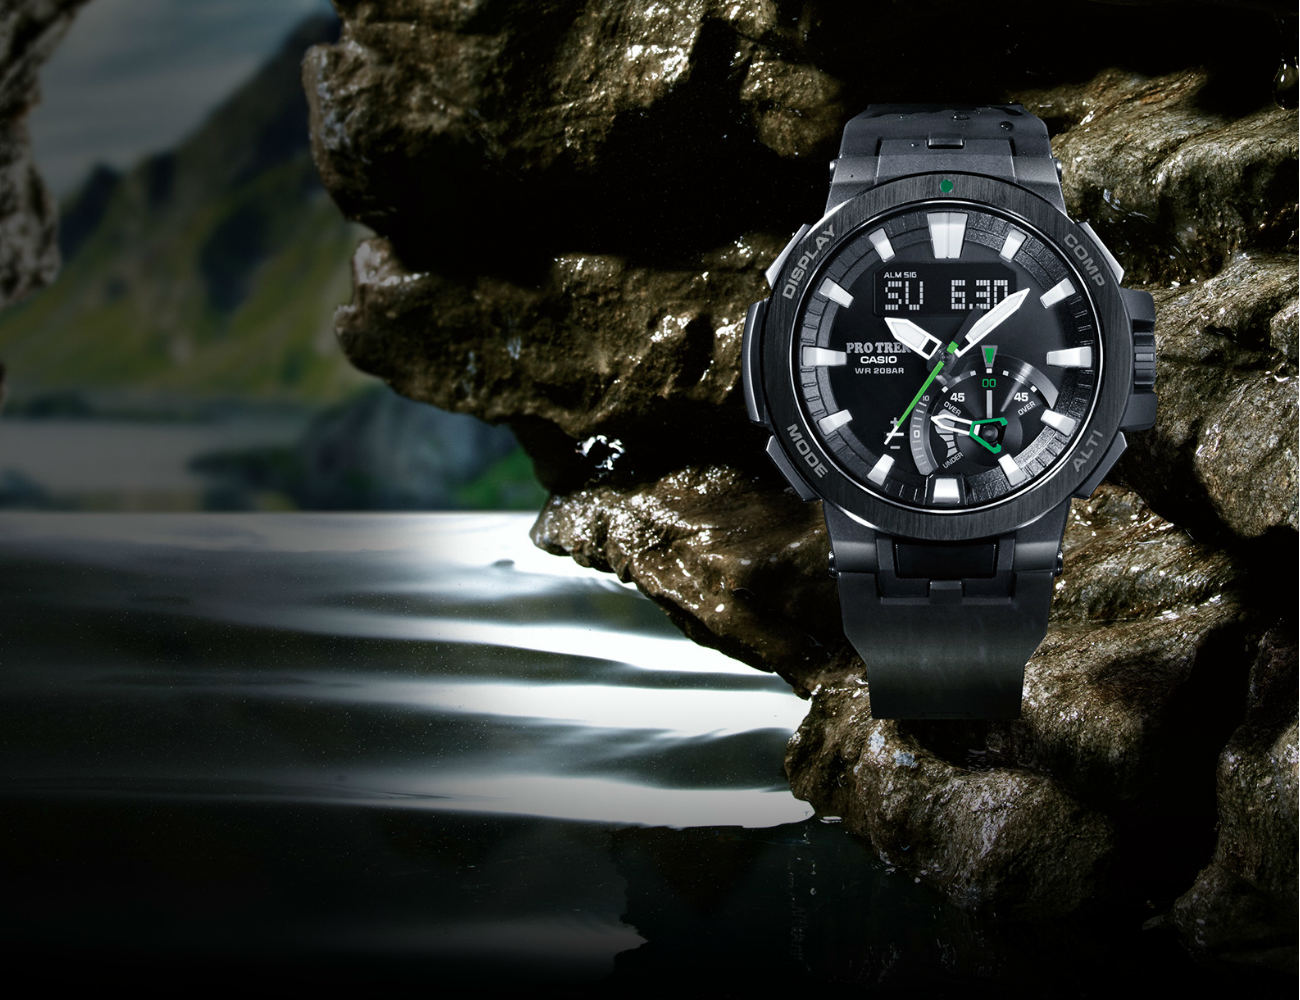 ProTrek PRW-7000 Watch by Casio